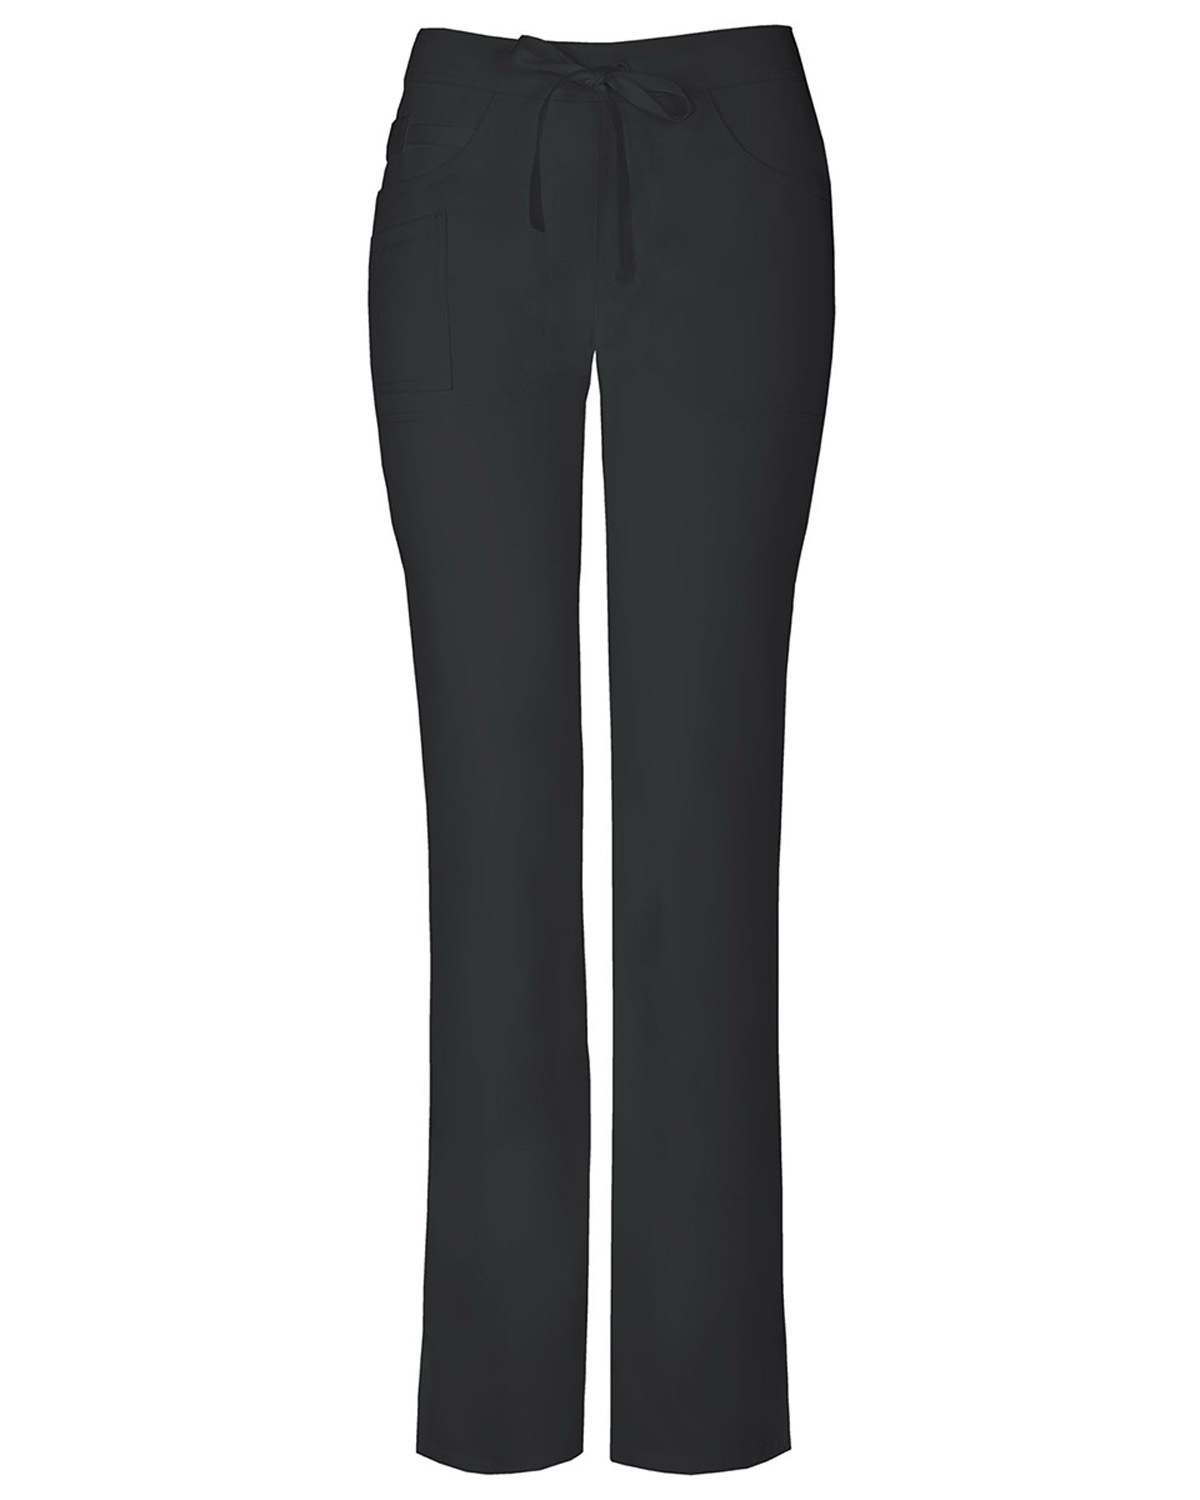 Code Happy CH000AT Women's Mid Rise Moderate Flare Leg Pant Tall at GotApparel